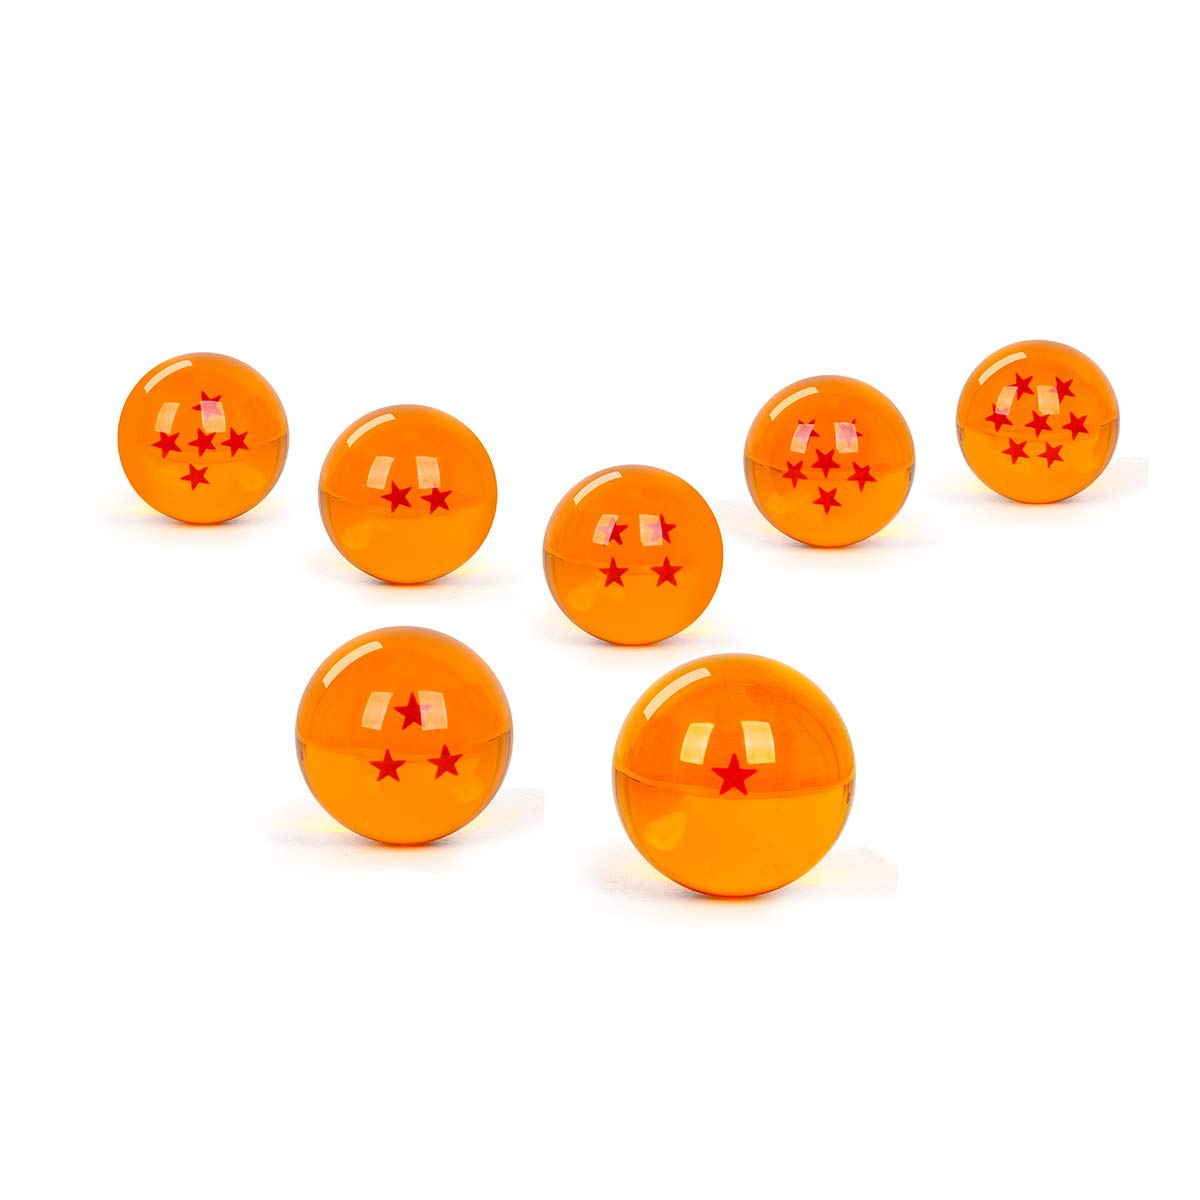 WeizhaonanCos Unisex Acrylic Resin Transparent Stars Balls Glass Ball Dragon Ball Cosplay Props Kids Play Toy Gift Set of 7pcs 43mm/1.7 in in Diameter (Orange) by WeizhaonanCos (Image #2)